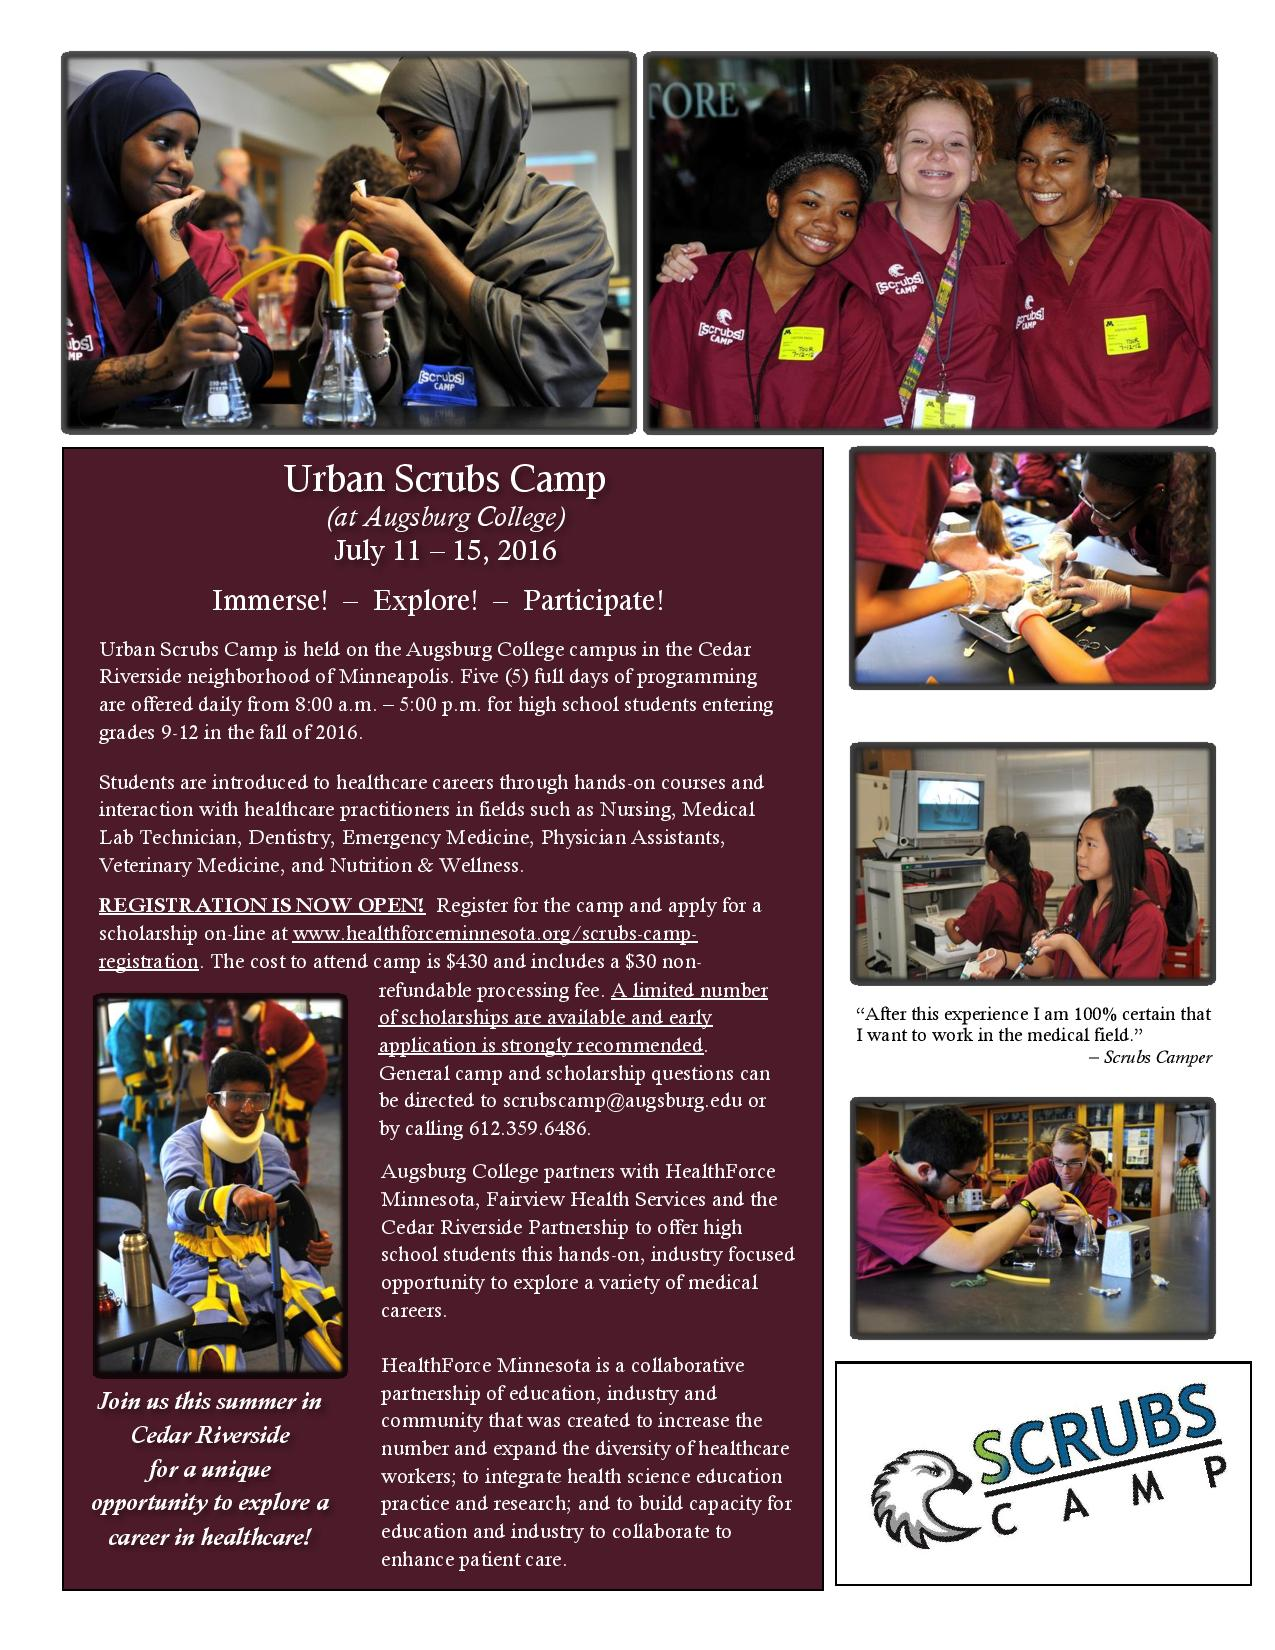 Urban_Scrubs_Camp_Info_Sheet-page-001.jpg